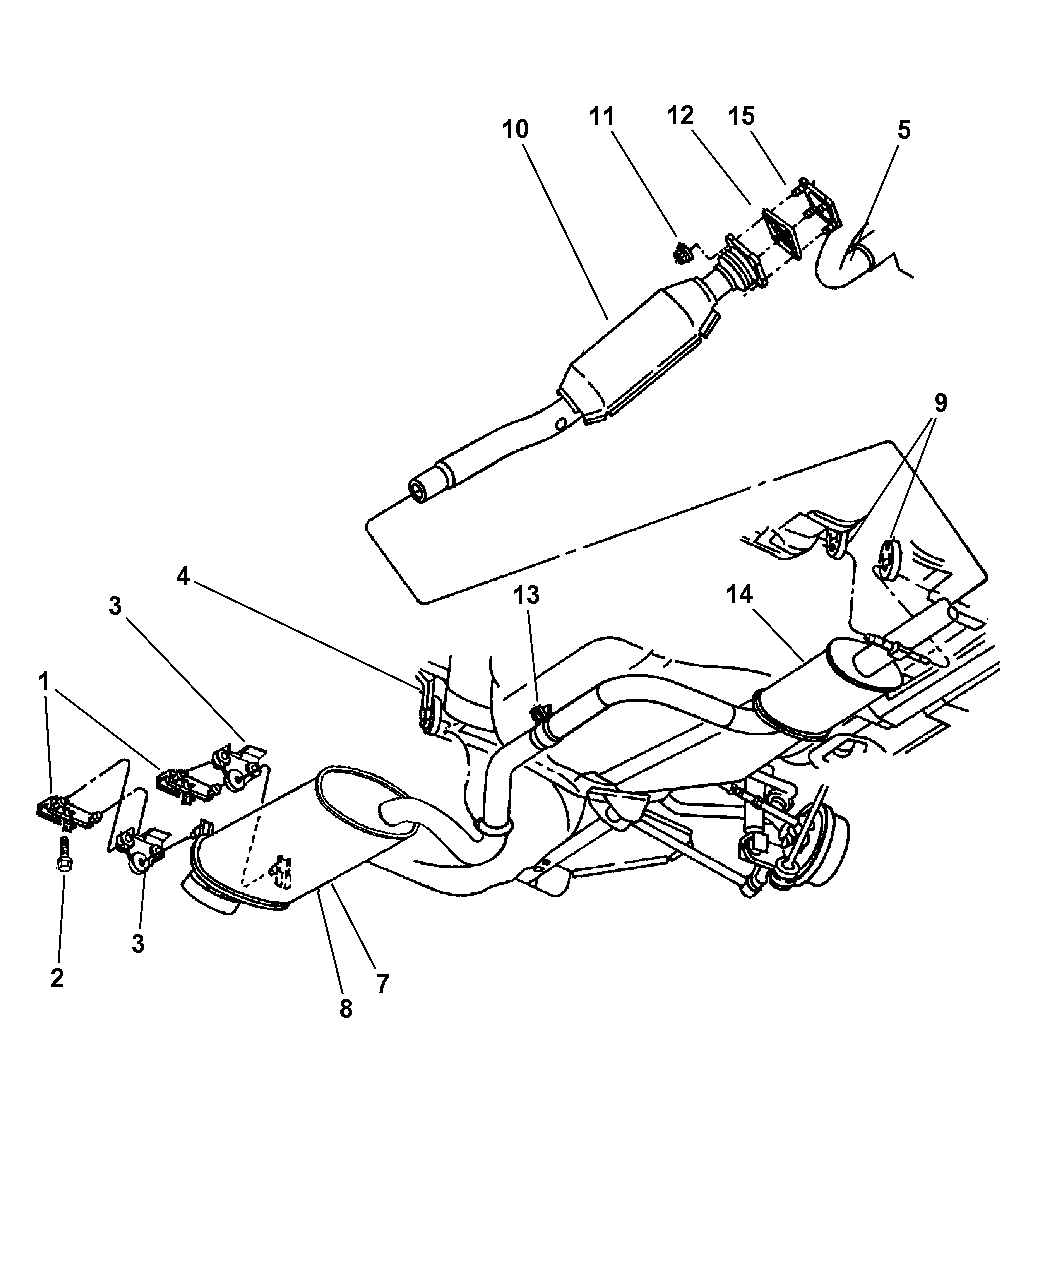 98 Seabring 2 5 Engine Diagram Wiring Library Chrysler 1998 Sebring Convertible Exhaust System